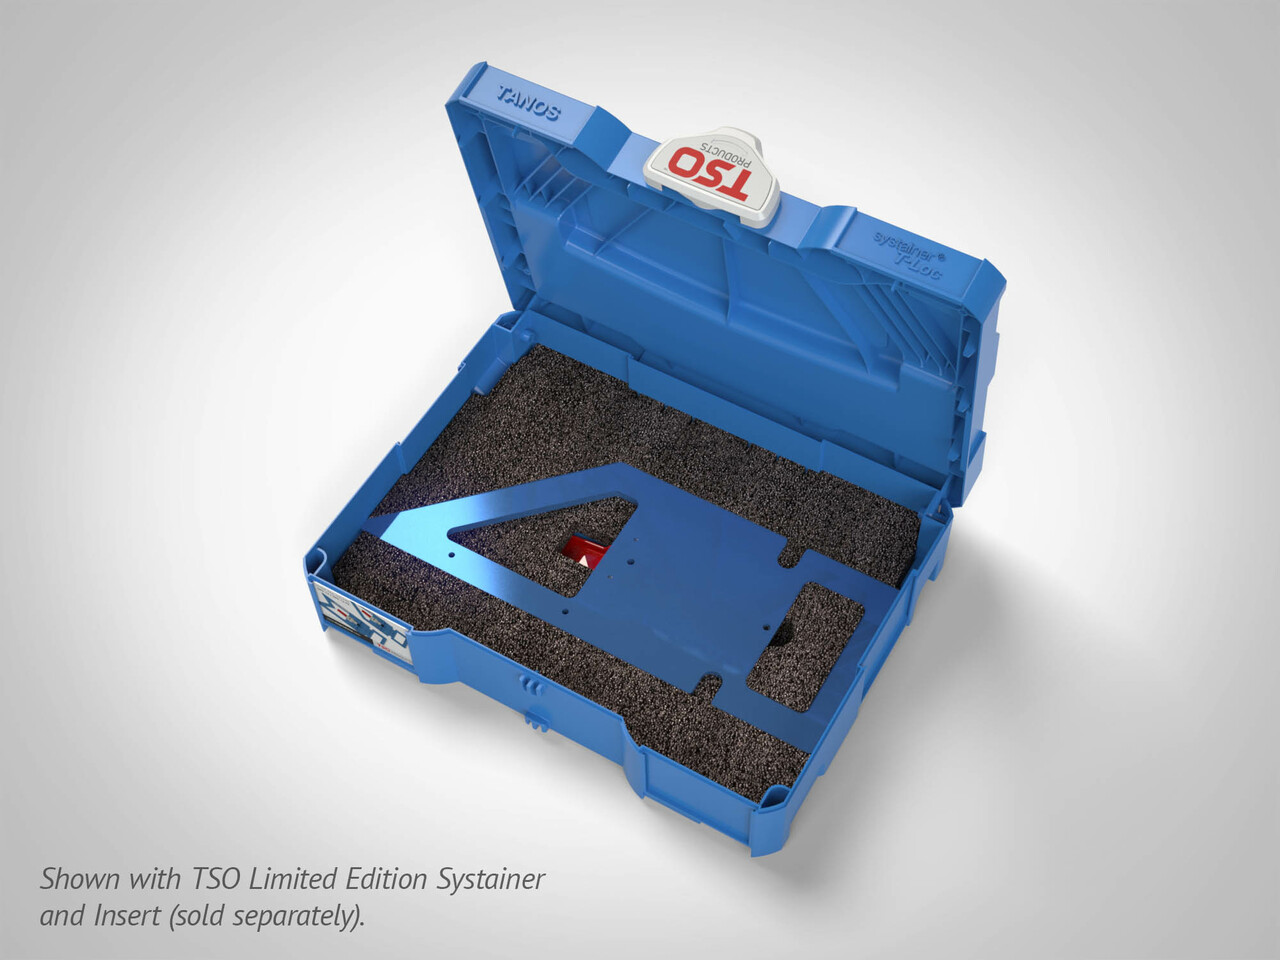 With our optional Dual FoamPac Insert, the GRS-16 fits in a SYS1 T-LOC Systainer!